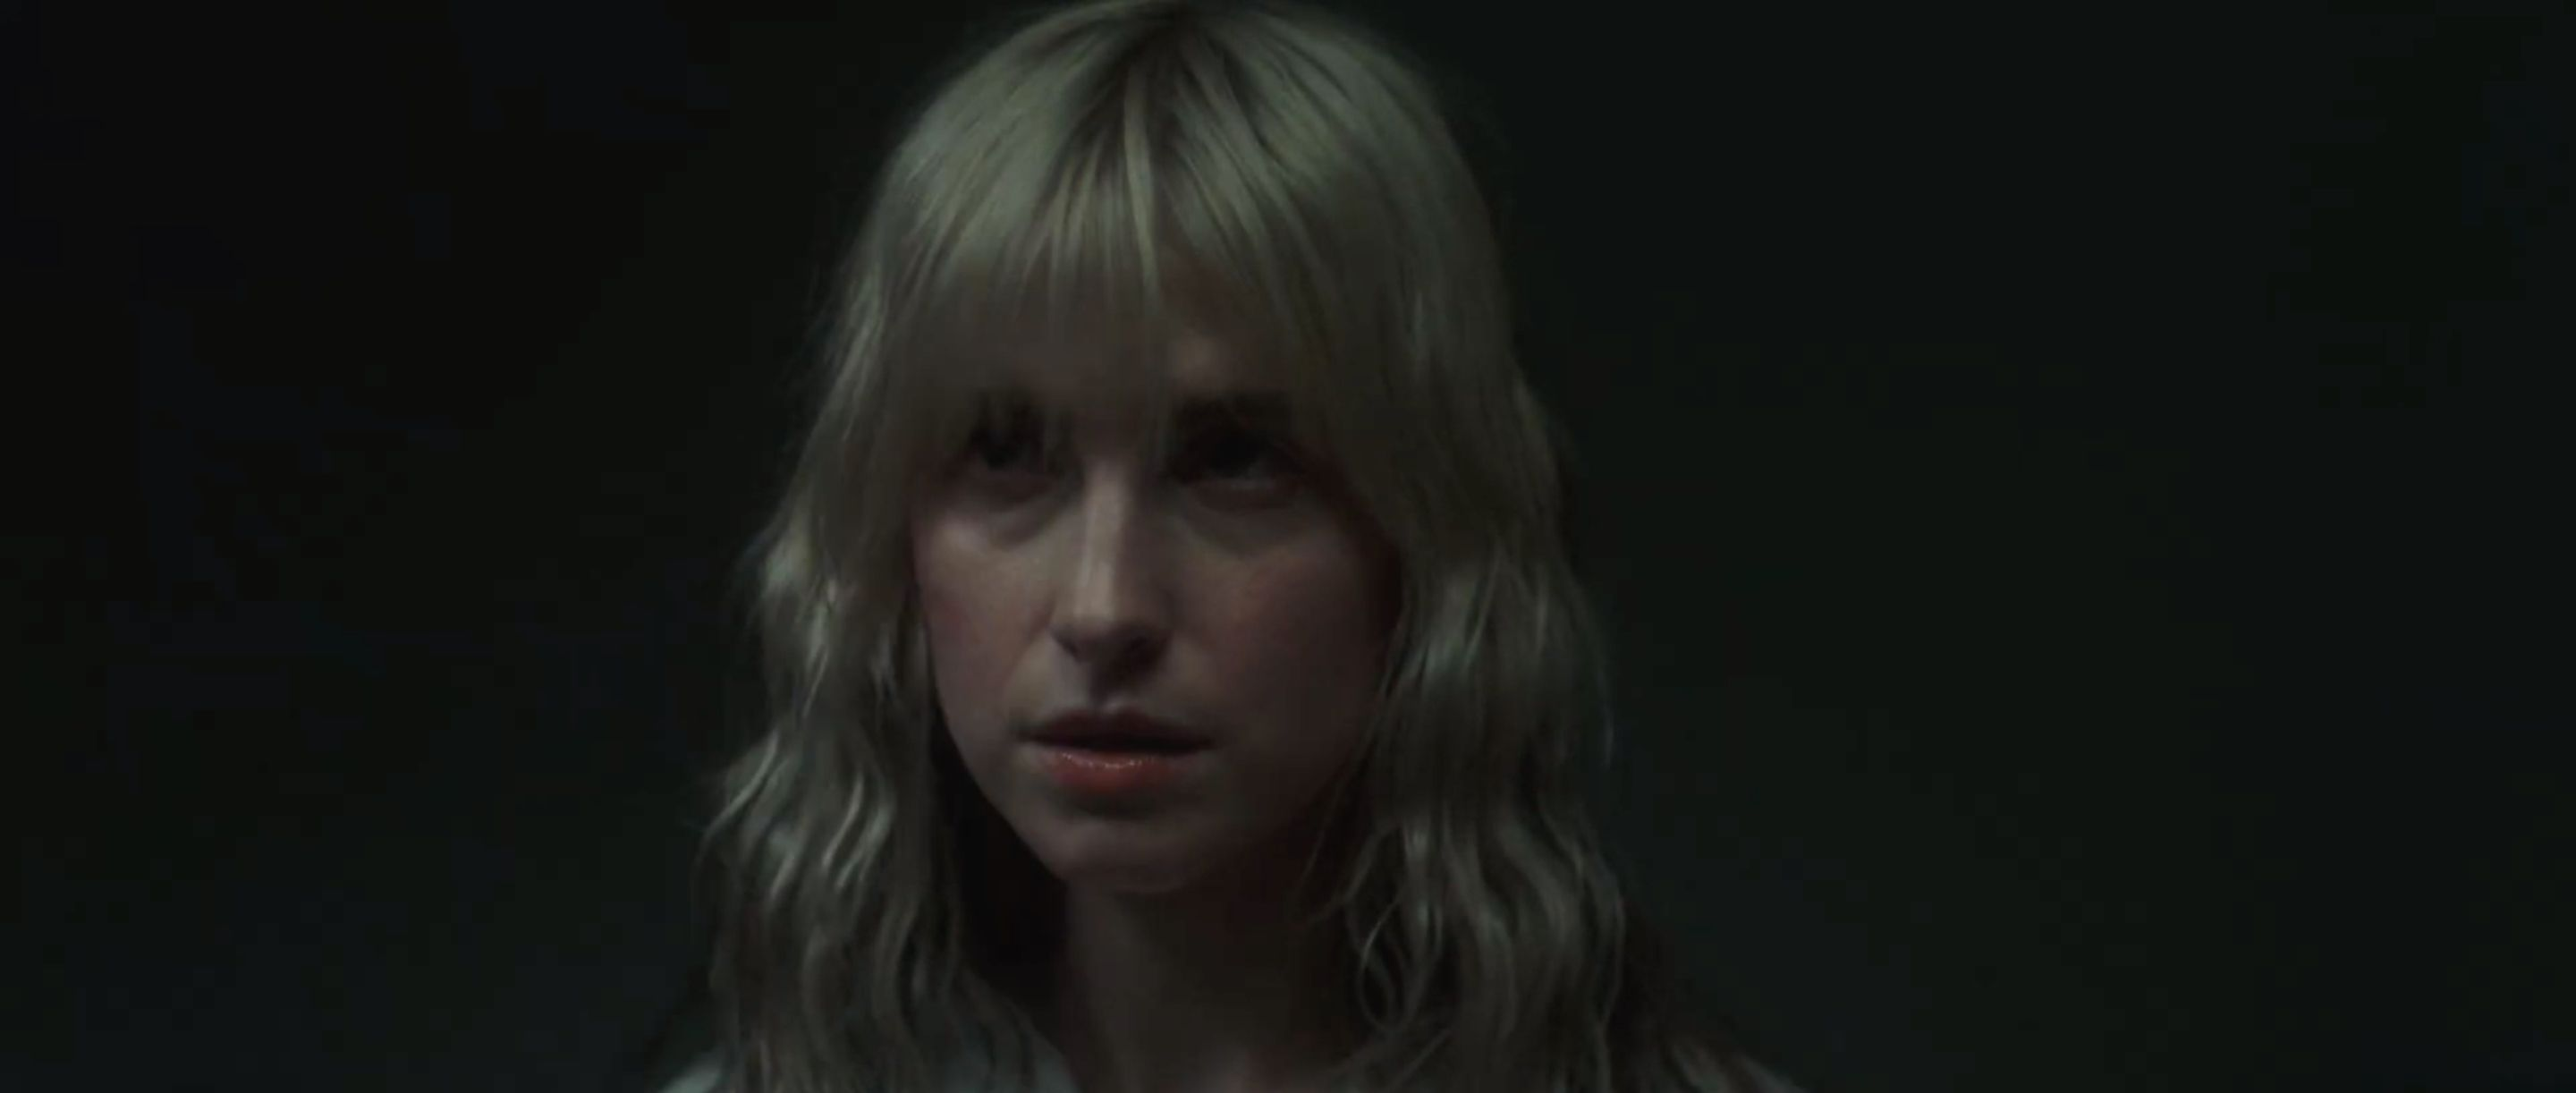 Paramore's Hayley Williams Basically Stars in a Mini Horror Movie for Her Solo Debut, 'Simmer'